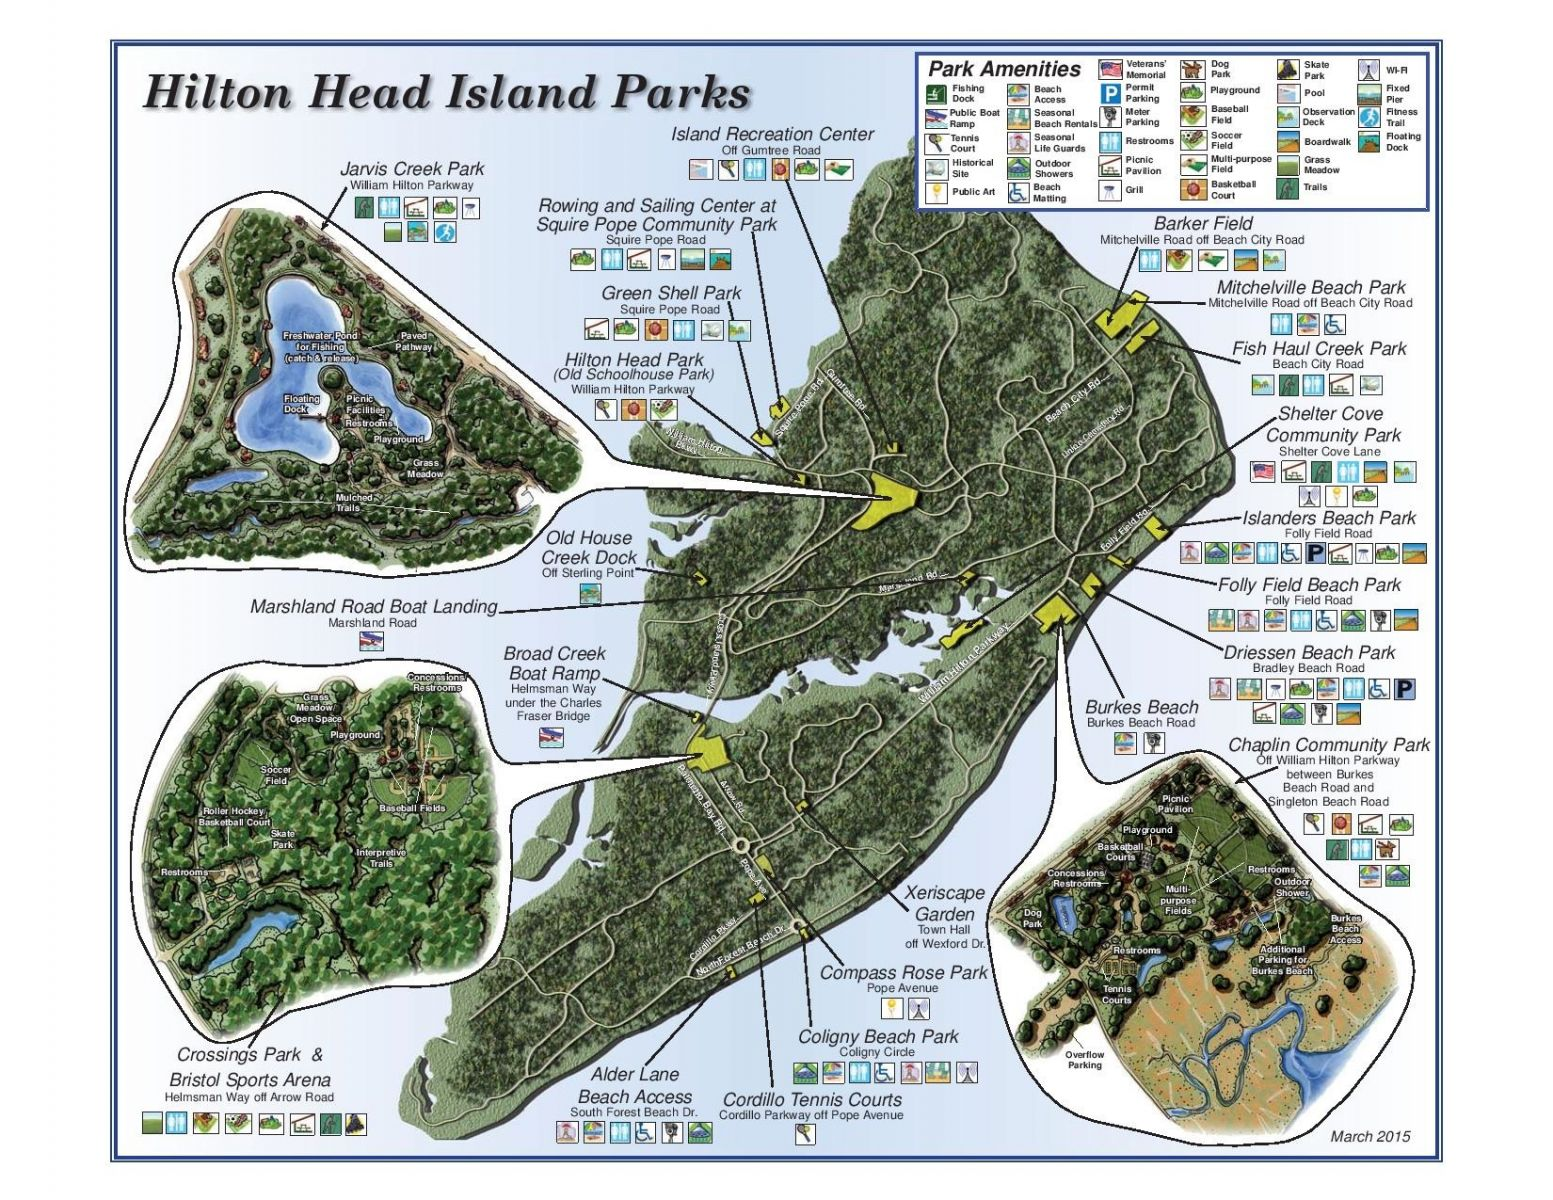 st augustine attractions map with Hilton Head Island Parks on Amelia Island Map moreover Famous Historical Landmarks Florida 59362 likewise Smithsonian Museum Natural History in addition Mission Beach also Florida Maps.